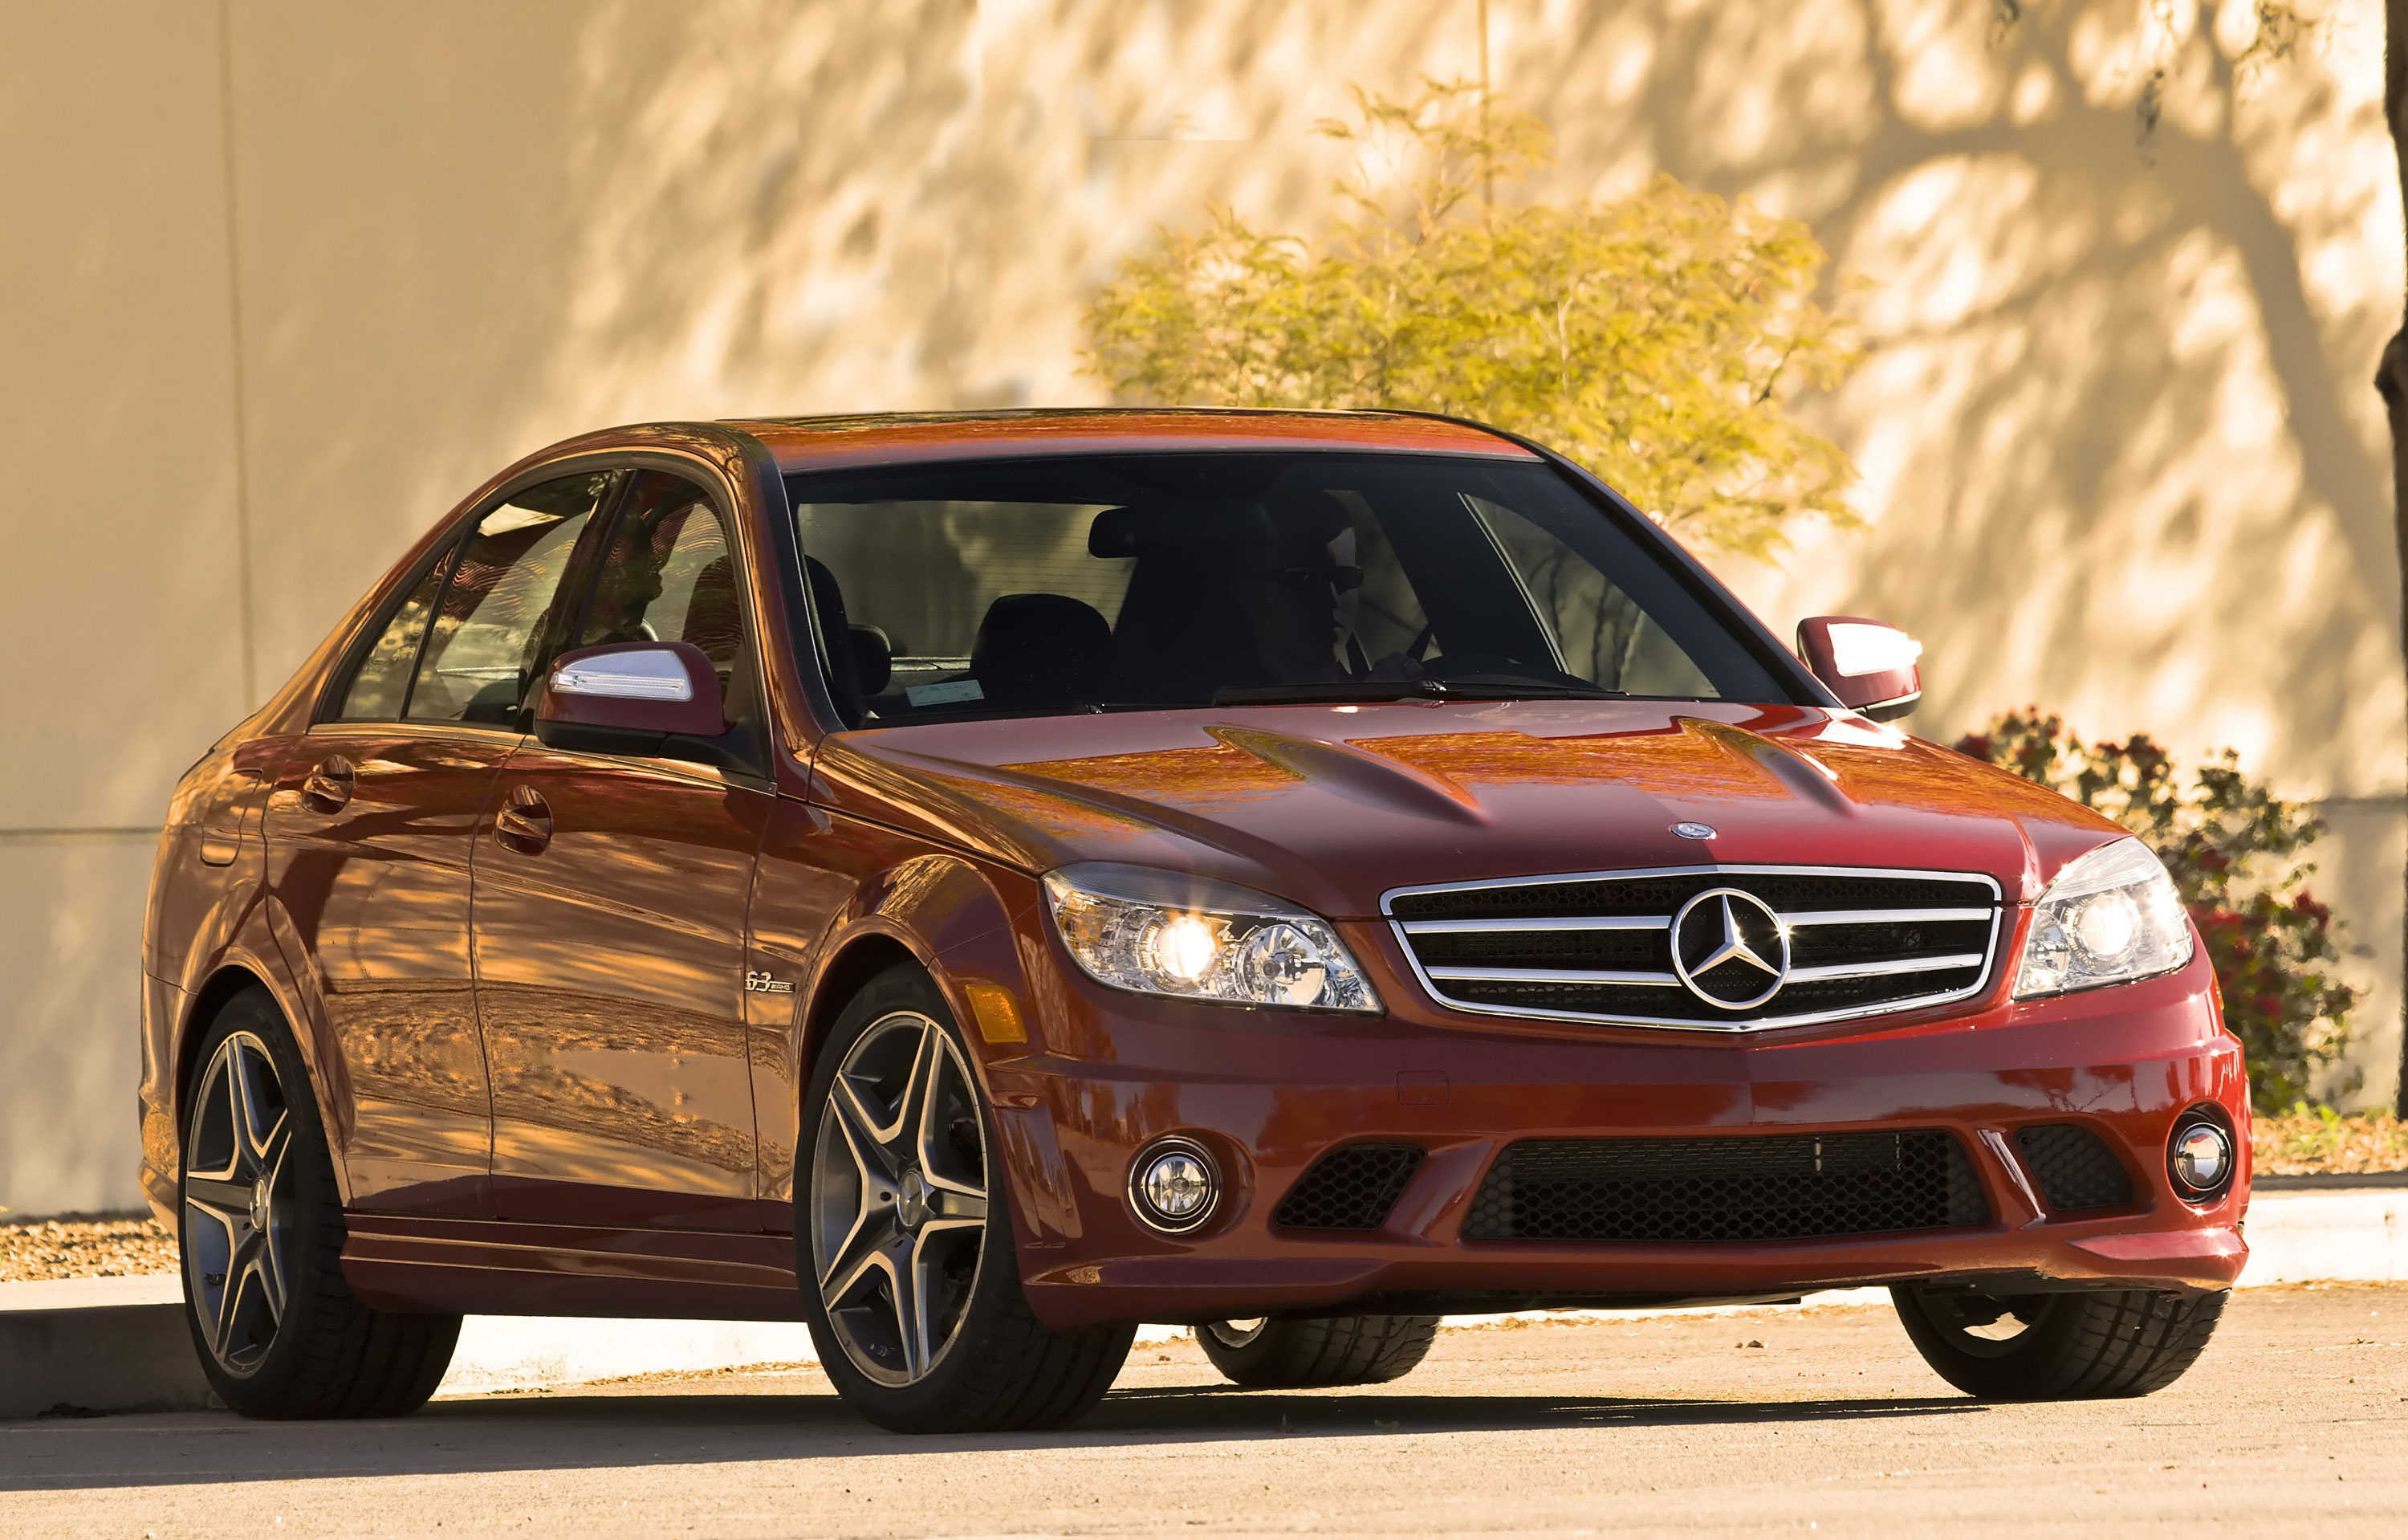 2008 mercedes benz c63 amg hd pictures. Black Bedroom Furniture Sets. Home Design Ideas